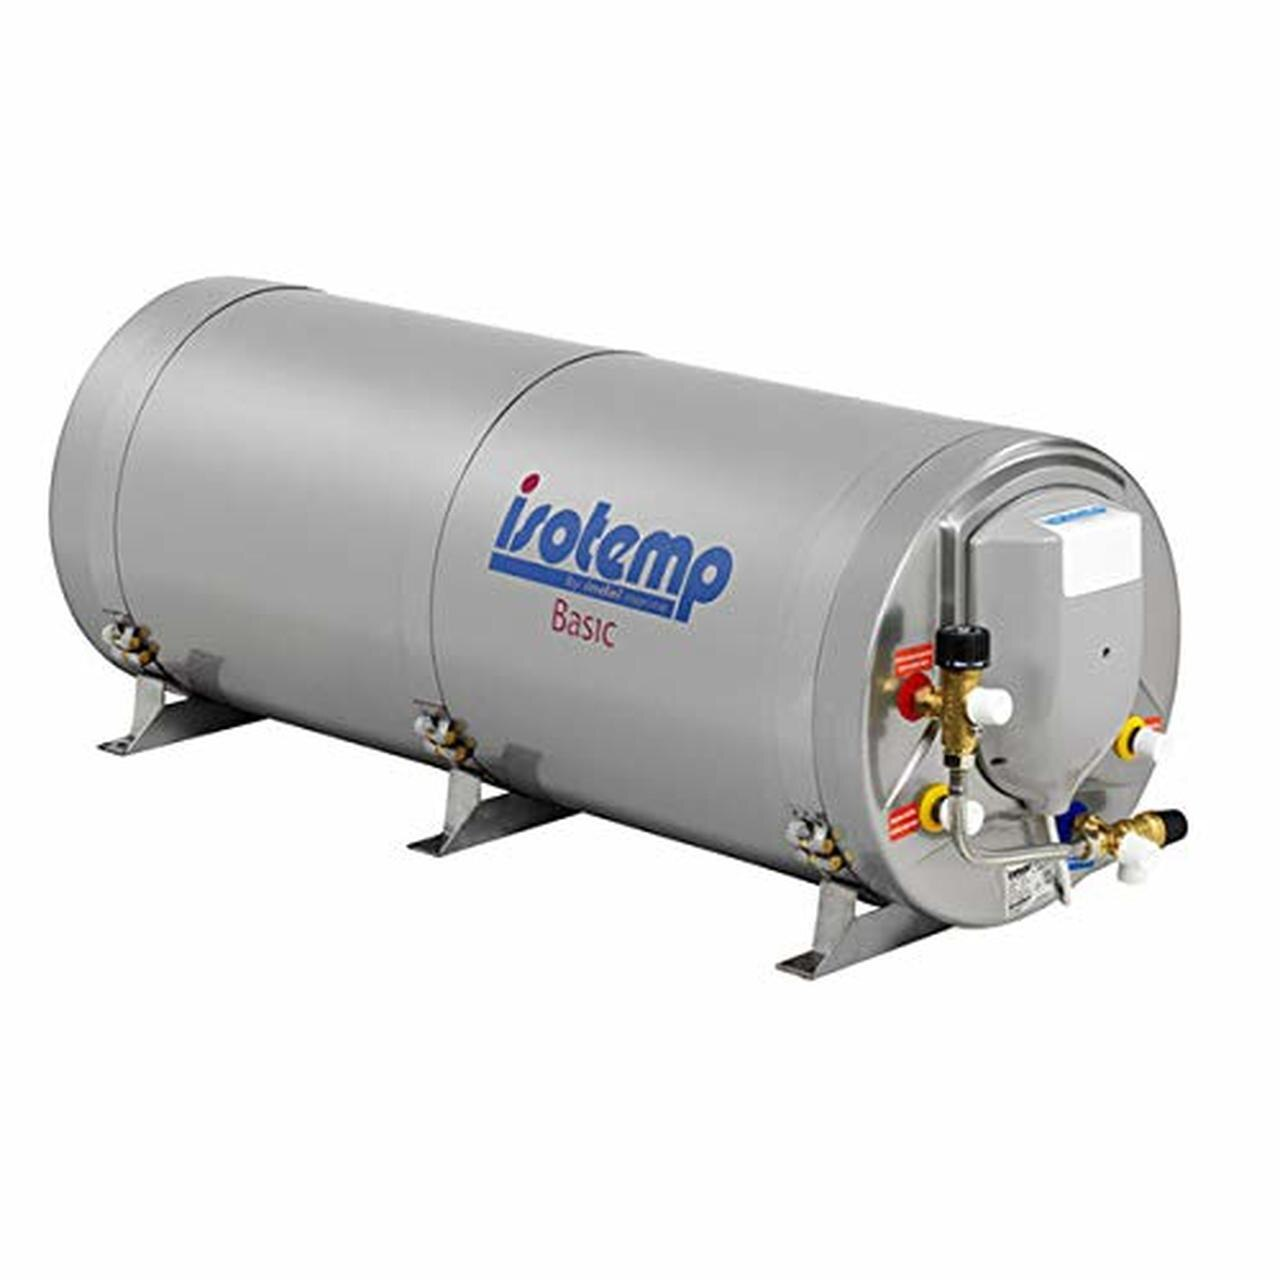 Isotemp Waterheater BASIC 75 Stainless Steel - 20 gallon, 750W/230V with safety mixing valve, European Plug